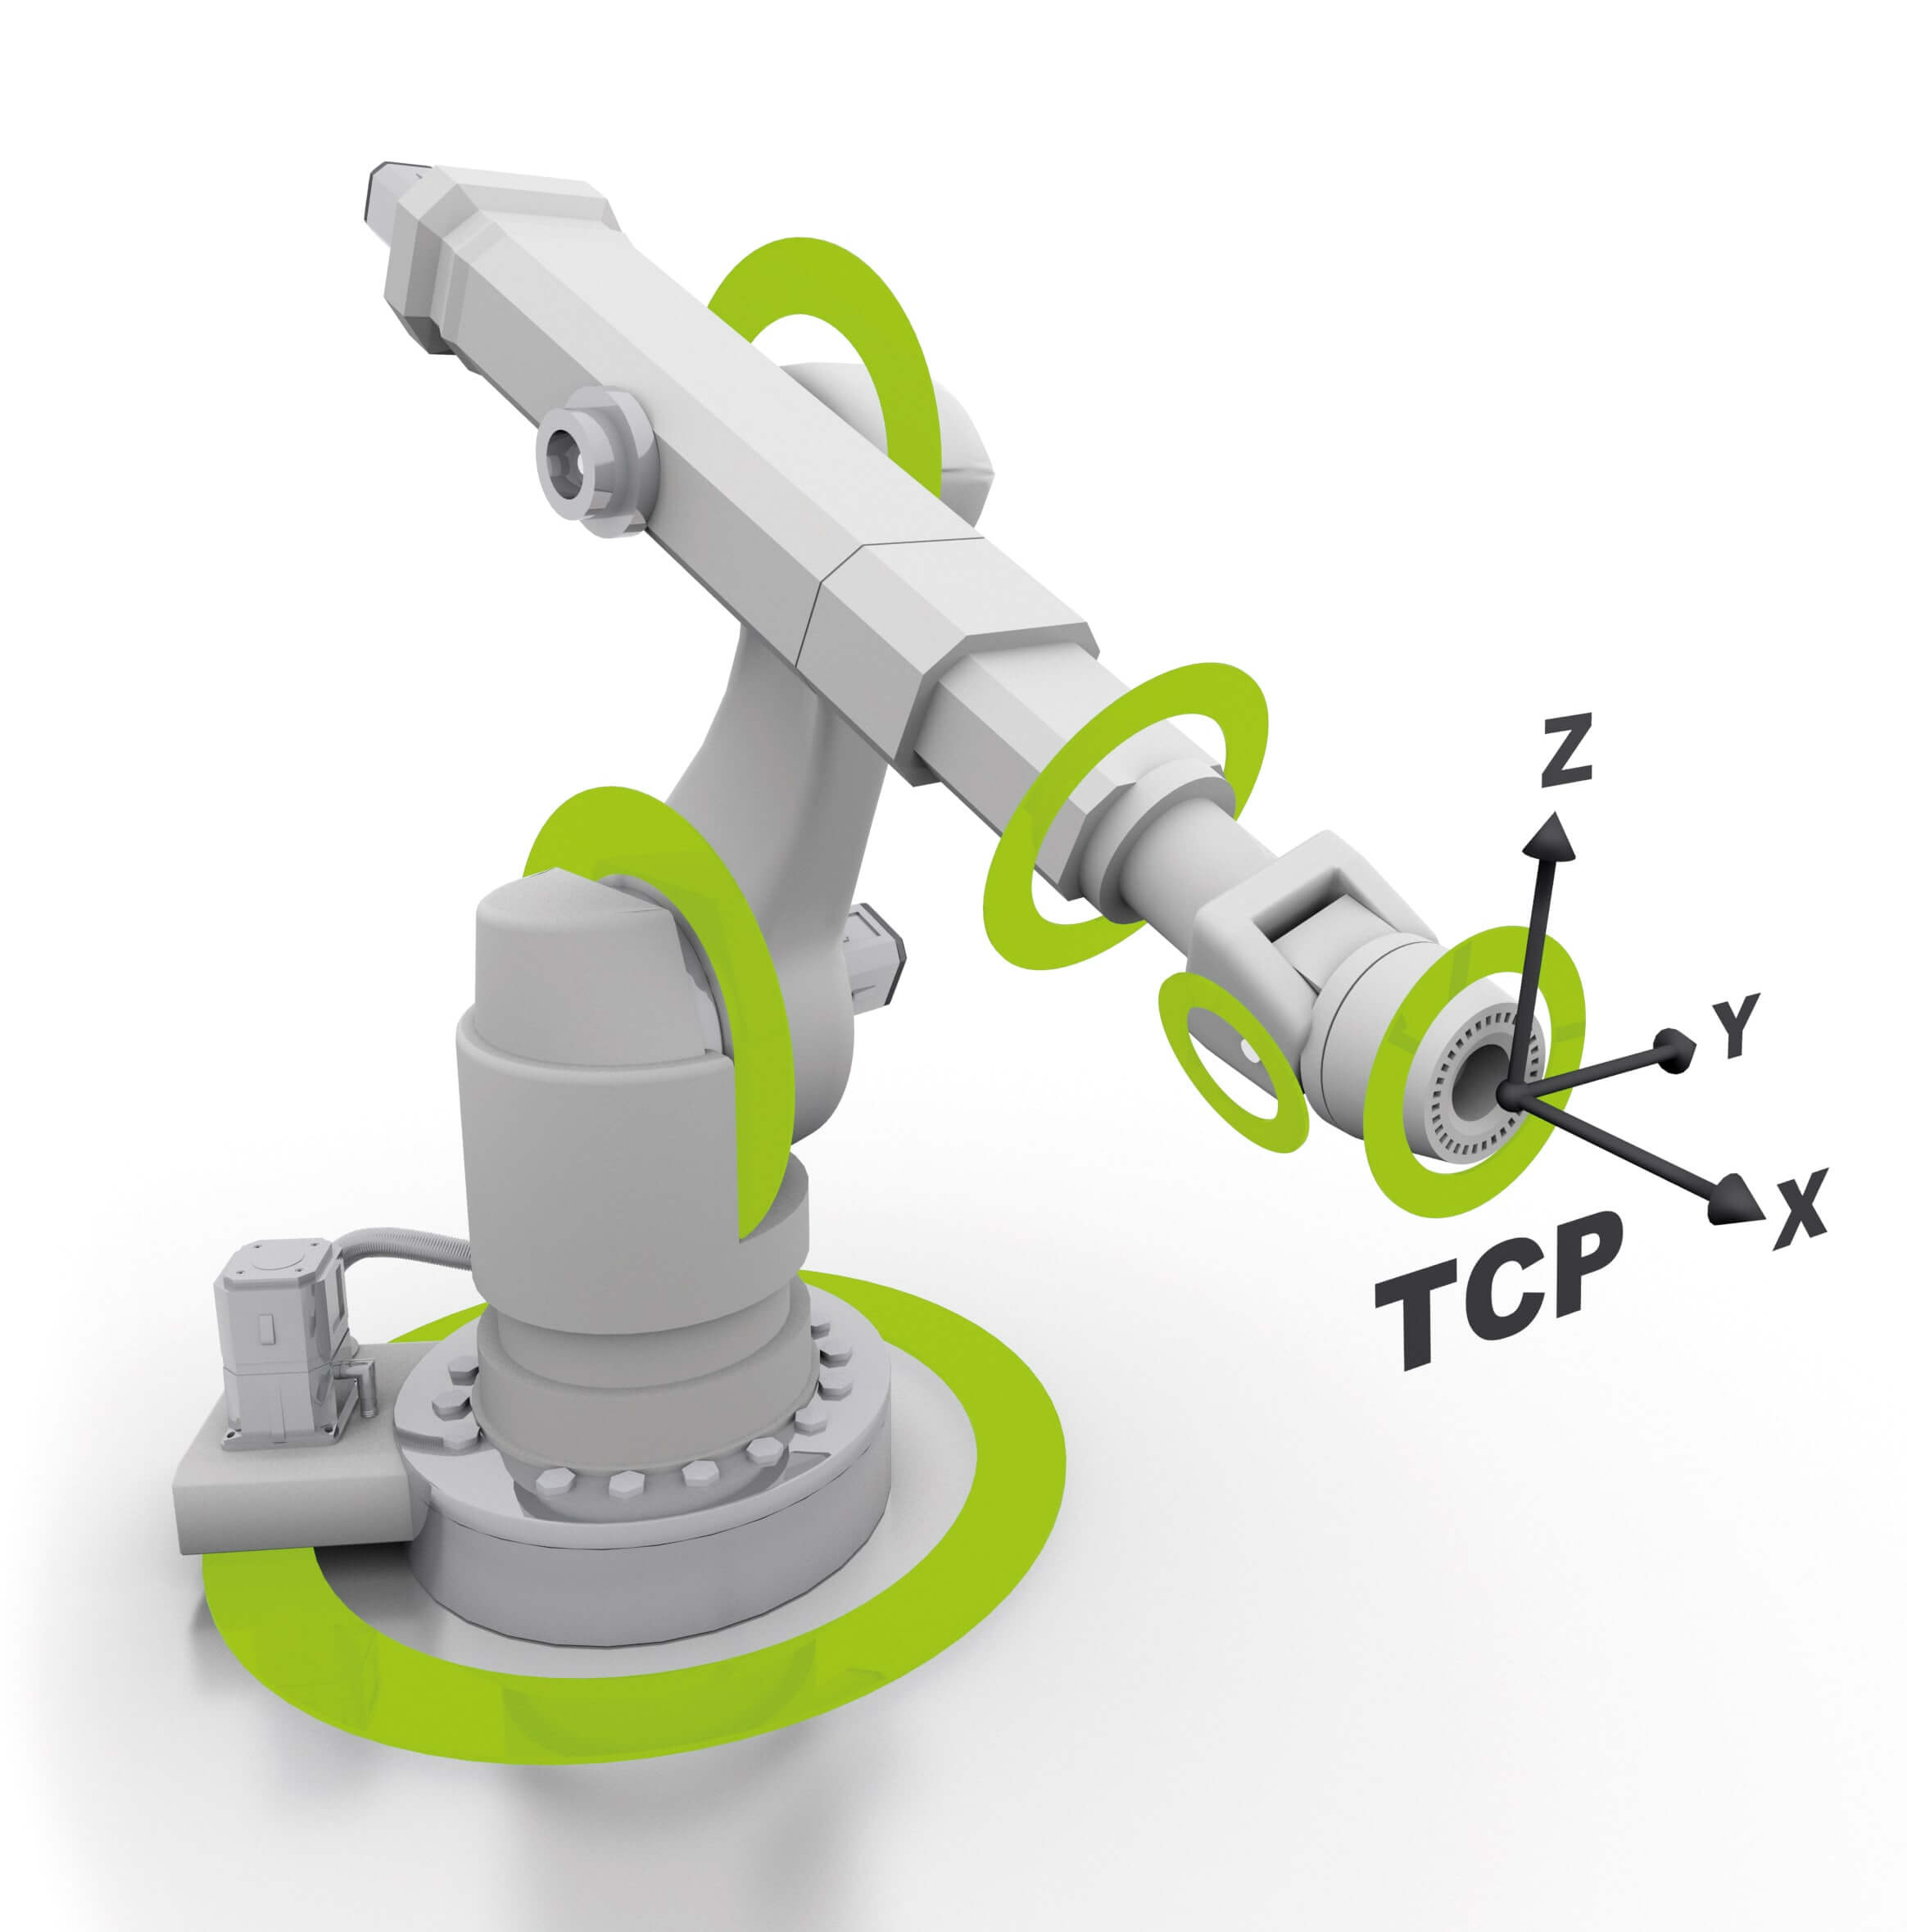 Industrial Robots: Encoders for Tool Center Point Accuracy